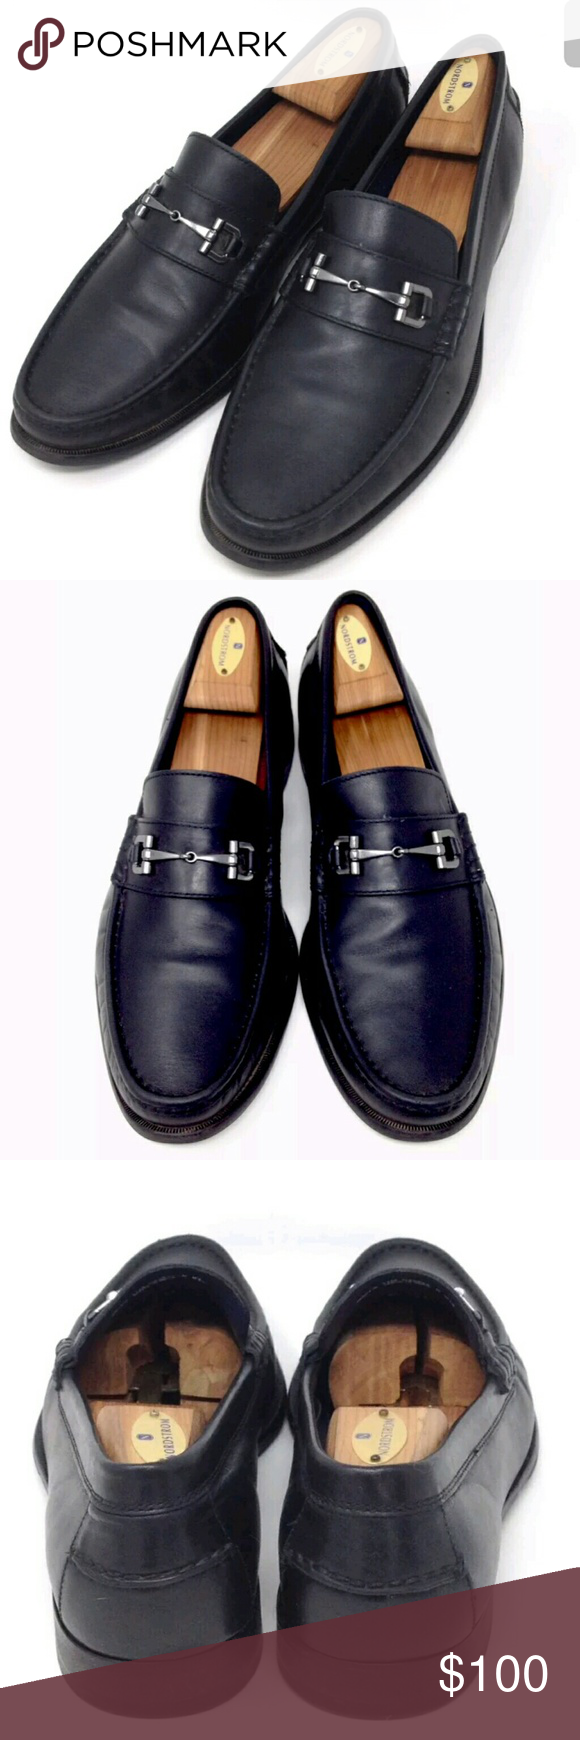 9dc8b1ced59 Cole Haan Shoes Aiden Grand Bit Penny US 11 Cole Haan Shoes Men s Aiden  Grand Bit